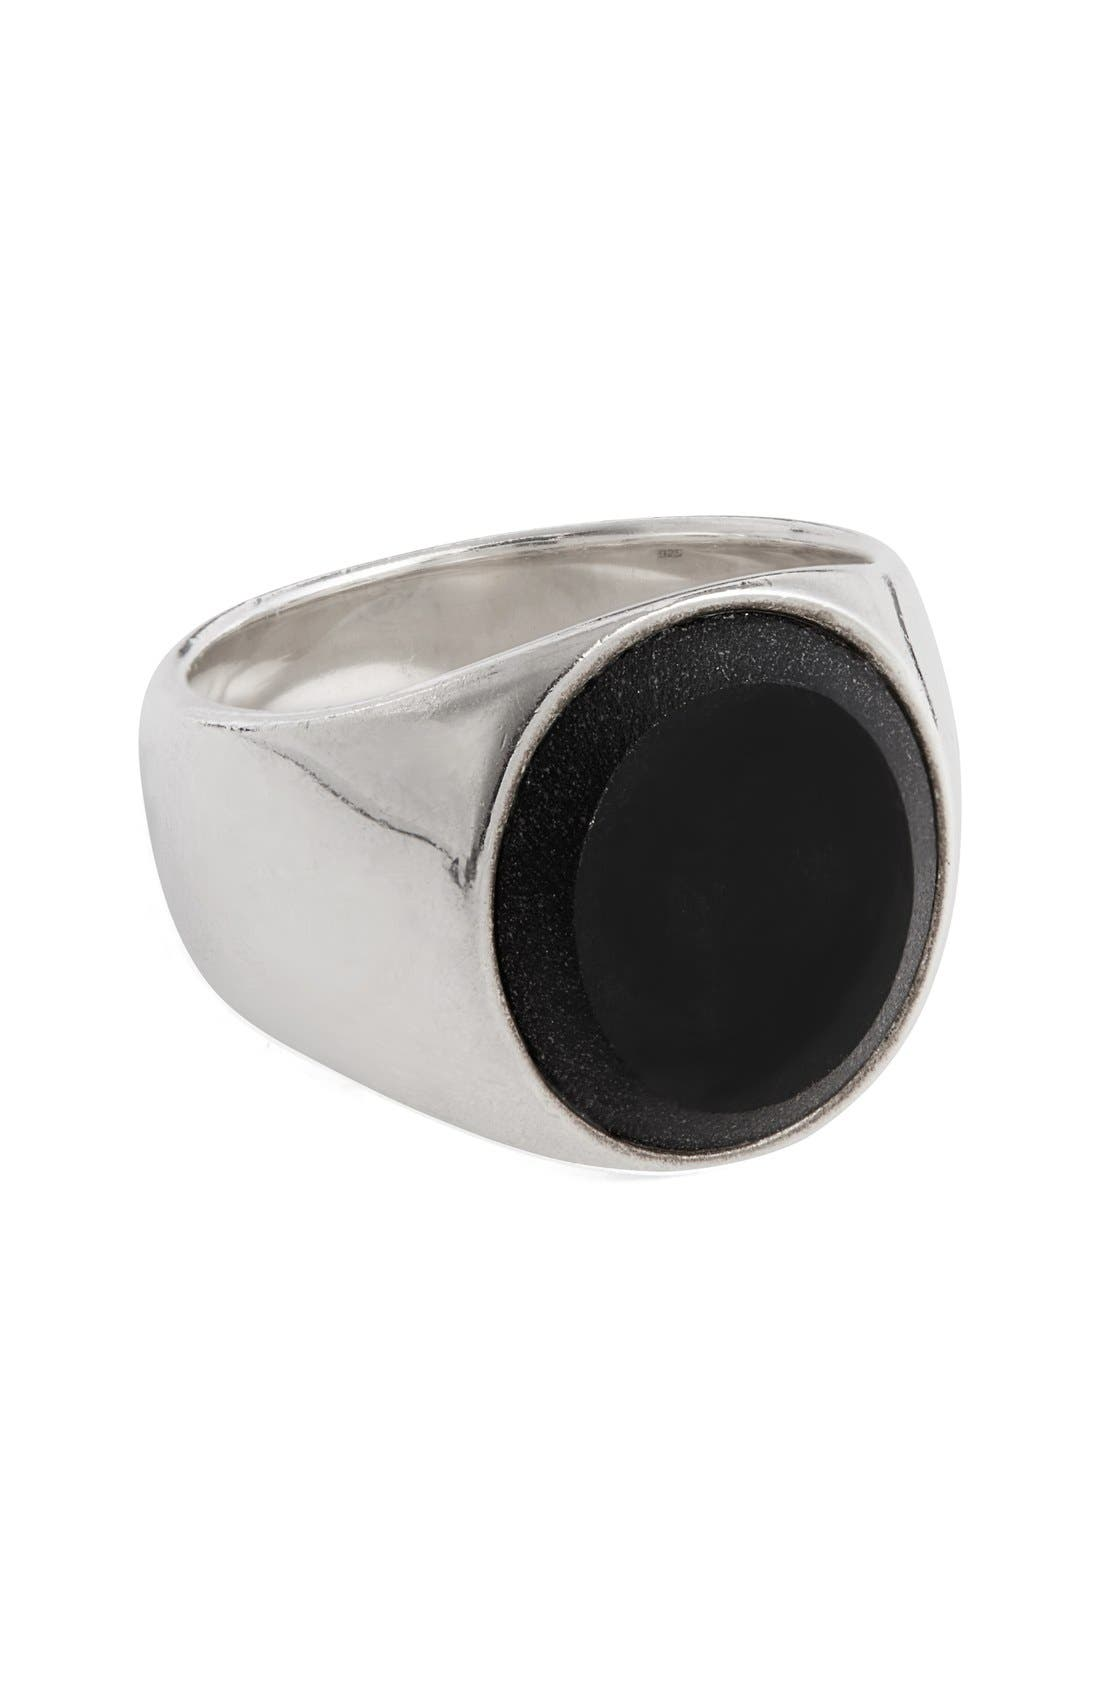 Tom Wood Black Onyx Oval Signet Ring